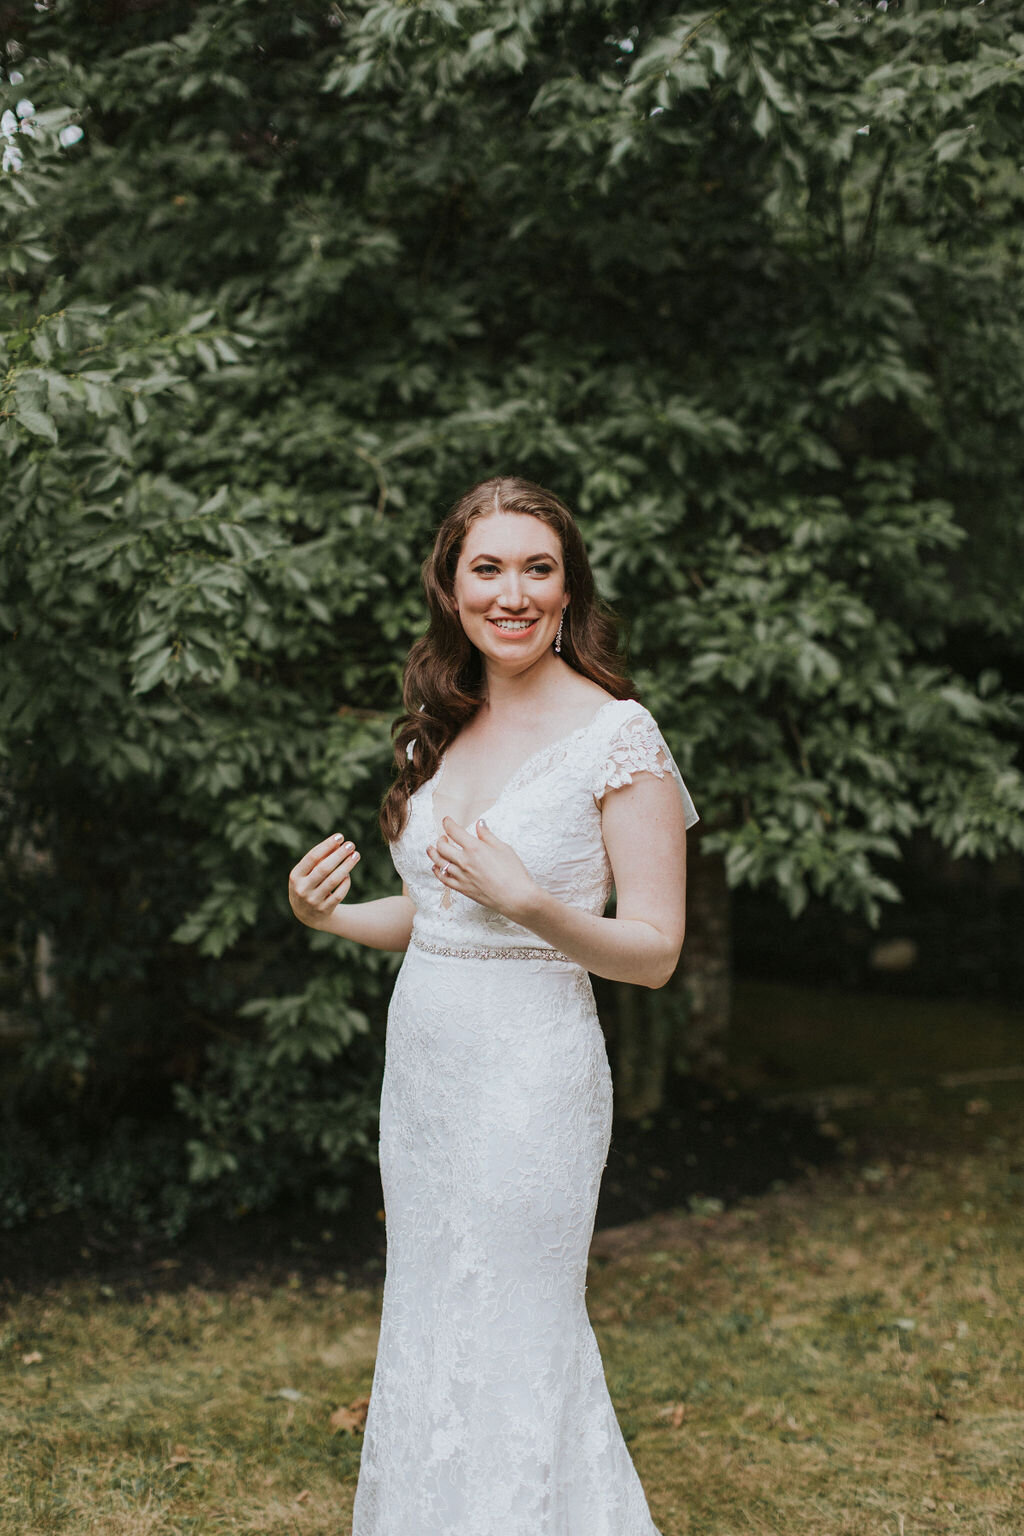 Simply Gorgeous by Erin Connecticut Southington CT Hair Makeup Bridal Wedding Bride Bridal Party CT Wedding Hair and Makeup Wedding Hair CT Wedding Makeup Artist CT Bride Wedding Traveling Hair Hartford CT2